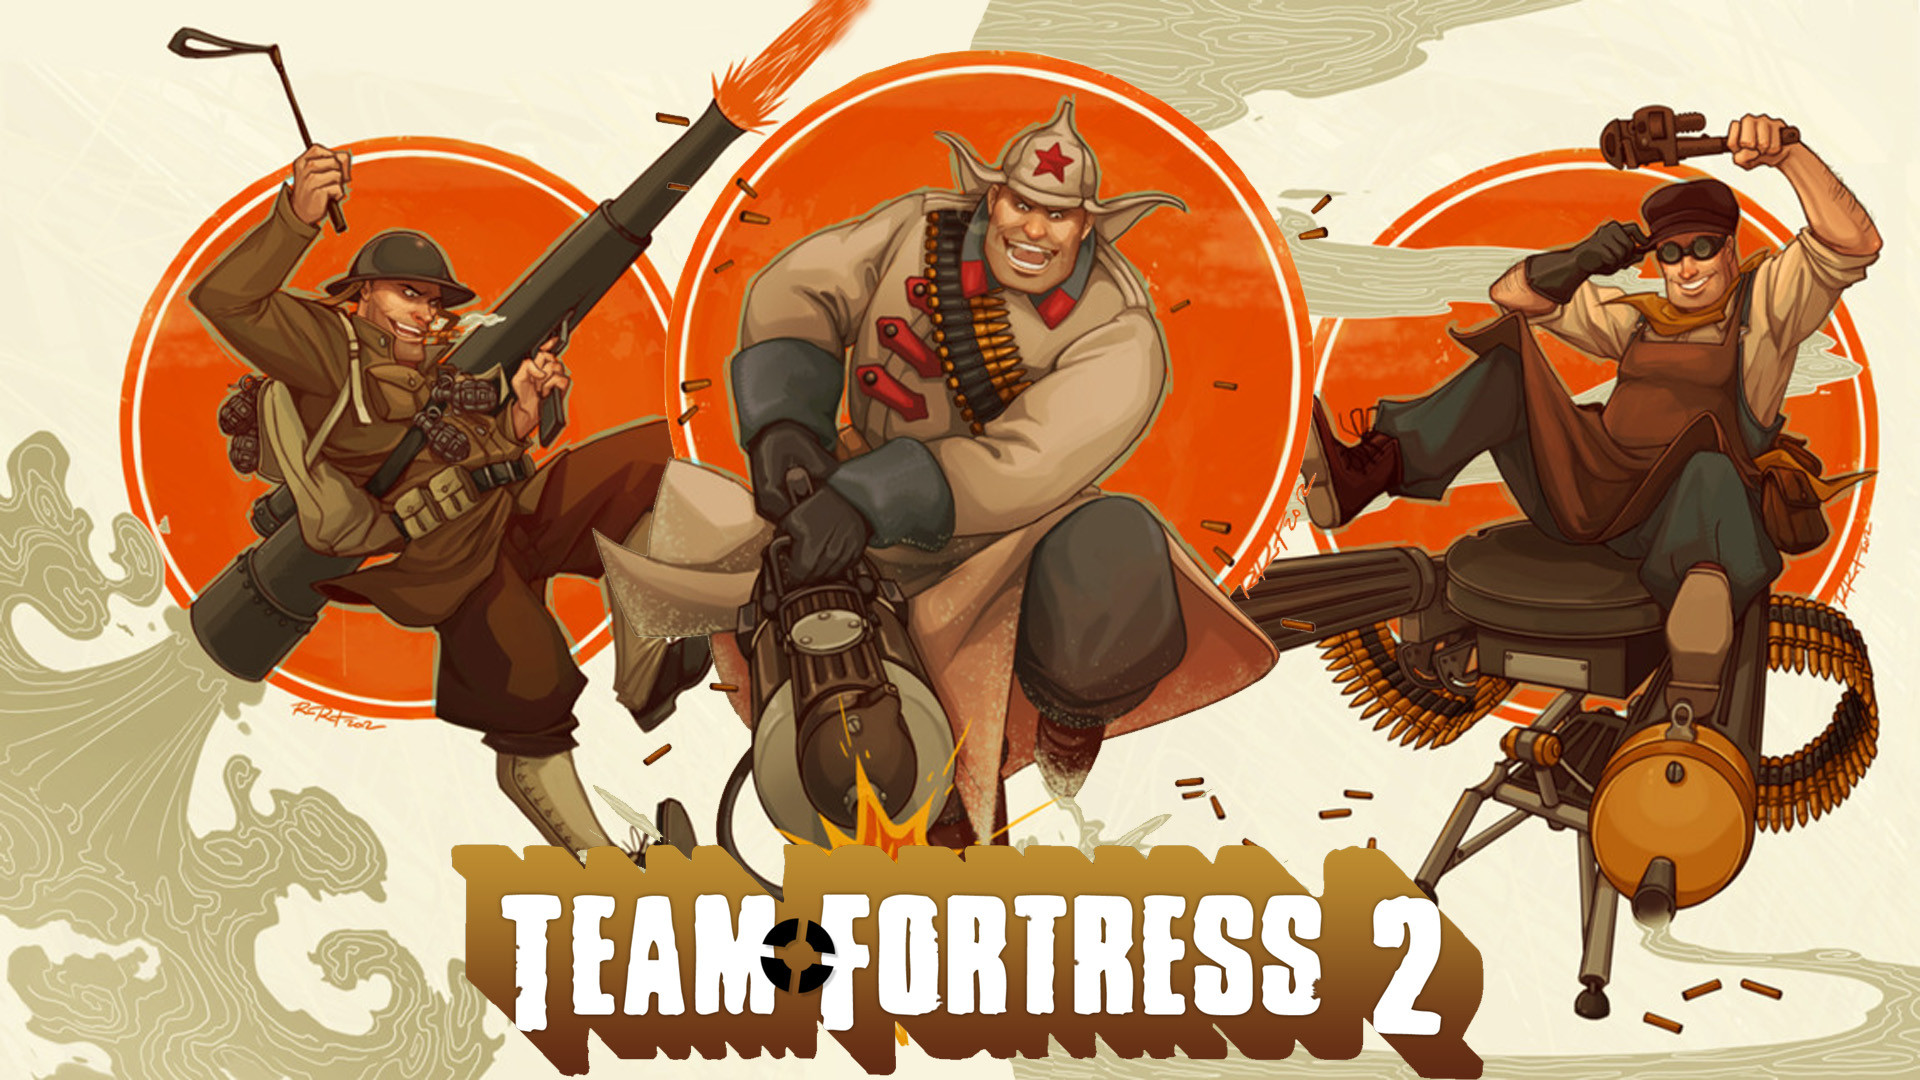 1920x1080 Awesome Set of 1980s Style Team Fortress 2 Characters